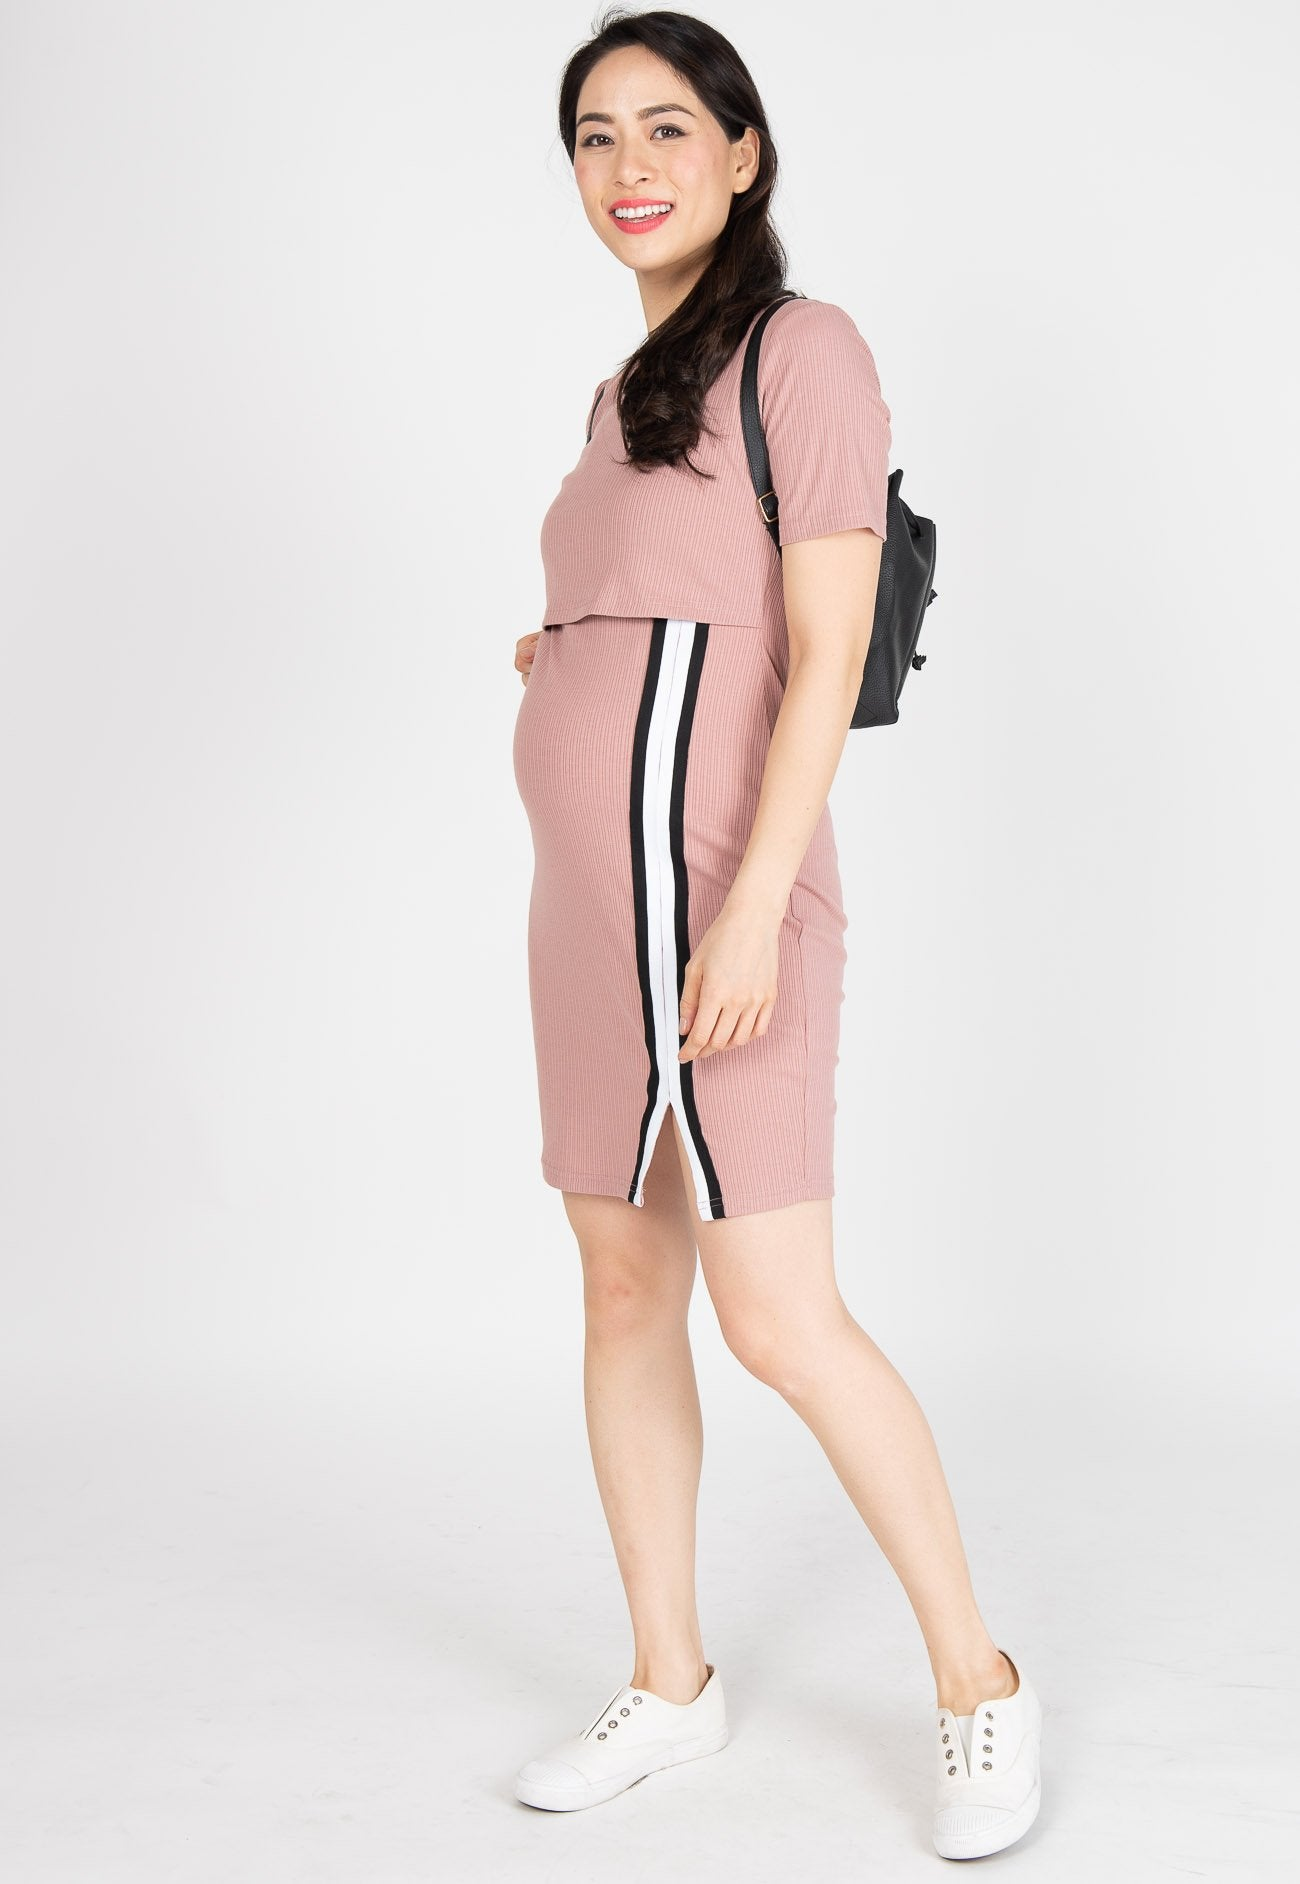 Go-Getter Bodycon Nursing Dress in Pink  by Jump Eat Cry - Maternity and nursing wear